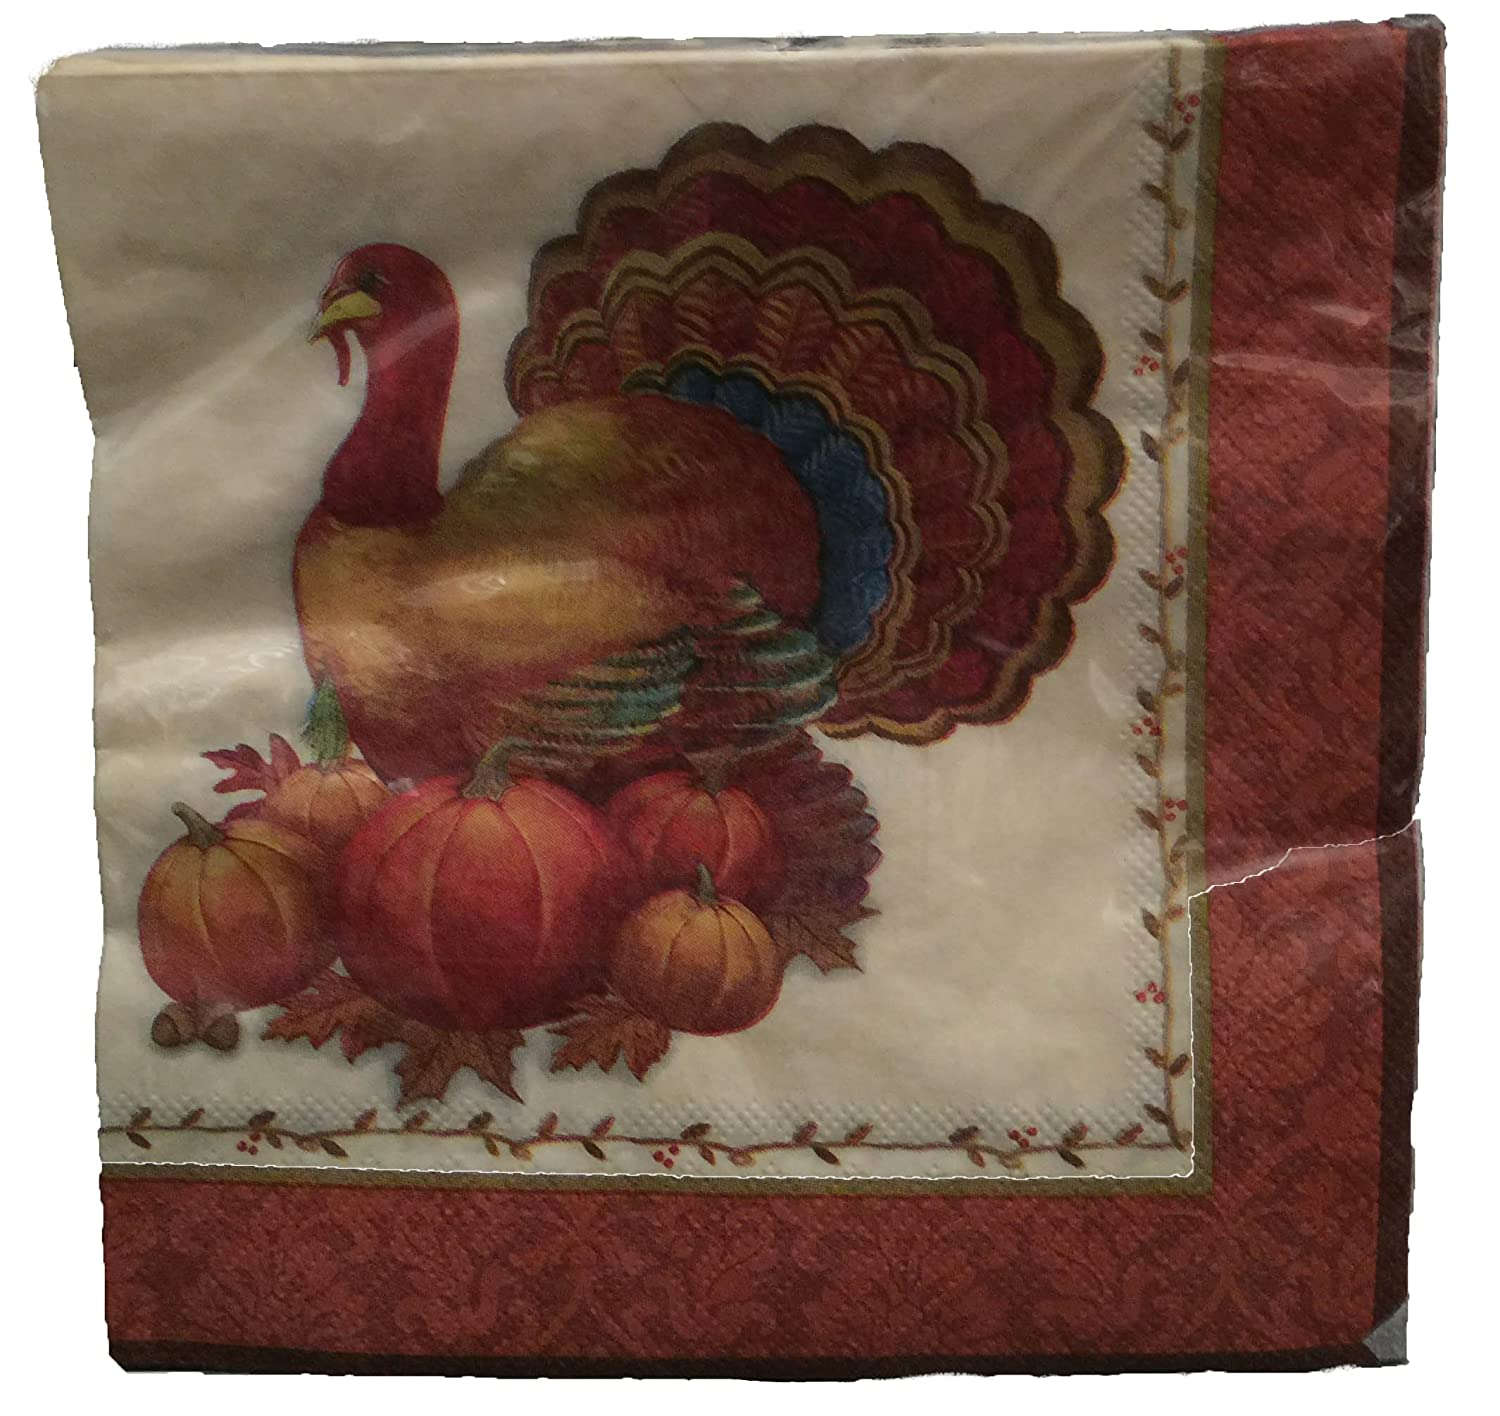 Amazon.com Thanksgiving Disposable Dinnerware Set for Your Holiday Party - Turkey Fall Harvest - Dinner Plates Dessert Plates Cups \u0026 Napkins (Serves 12) ... & Amazon.com: Thanksgiving Disposable Dinnerware Set for Your Holiday ...